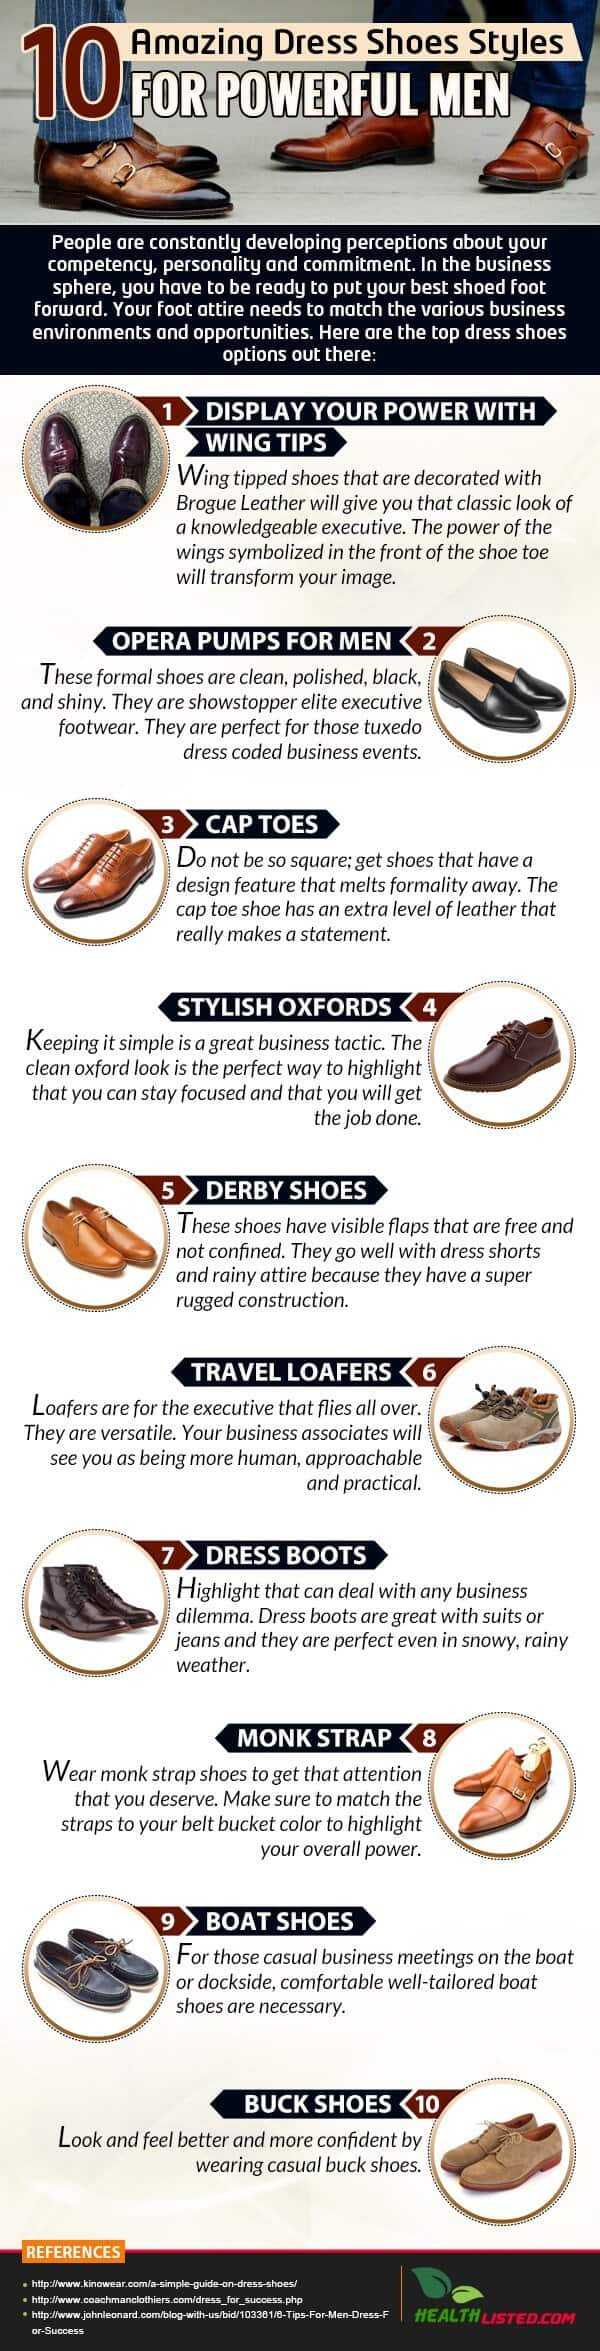 10 Amazing Dress Shoes Styles for Powerful Men